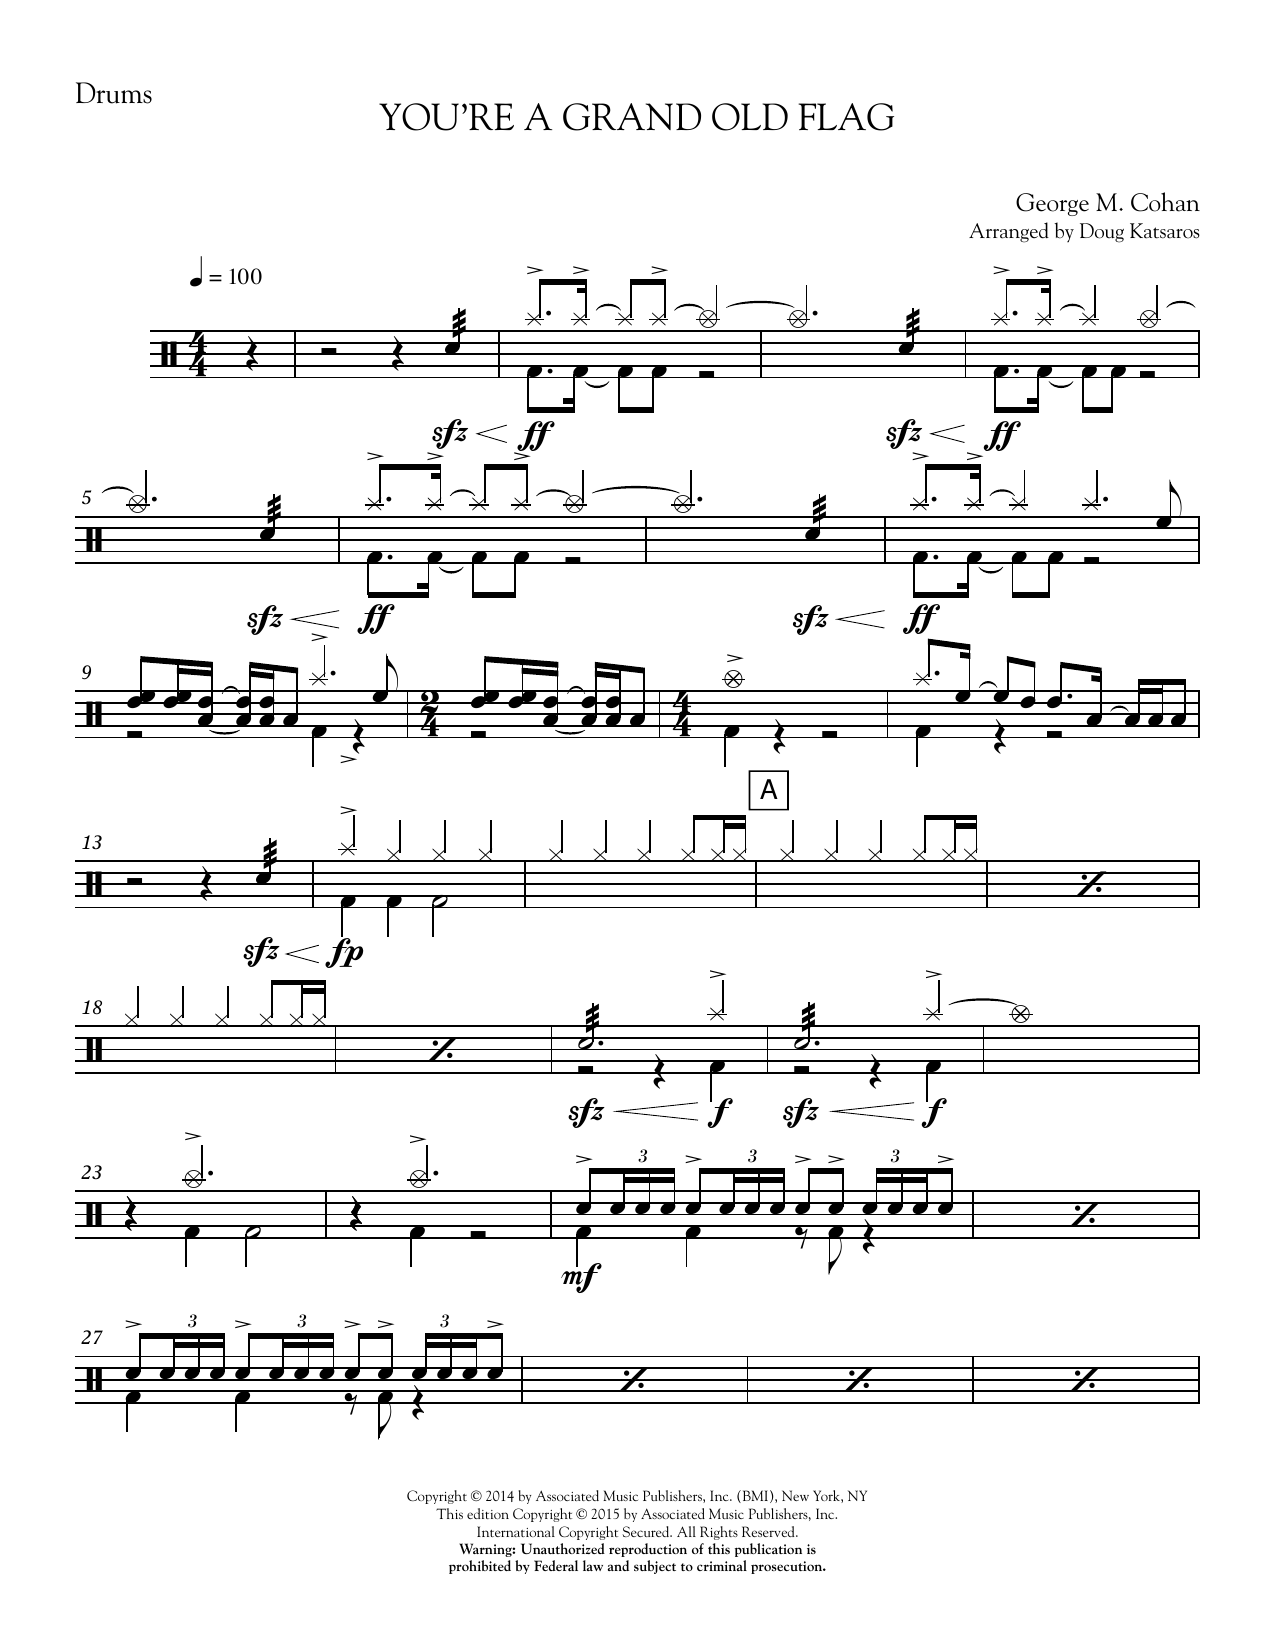 You're a Grand Old Flag - Drum Set Sheet Music